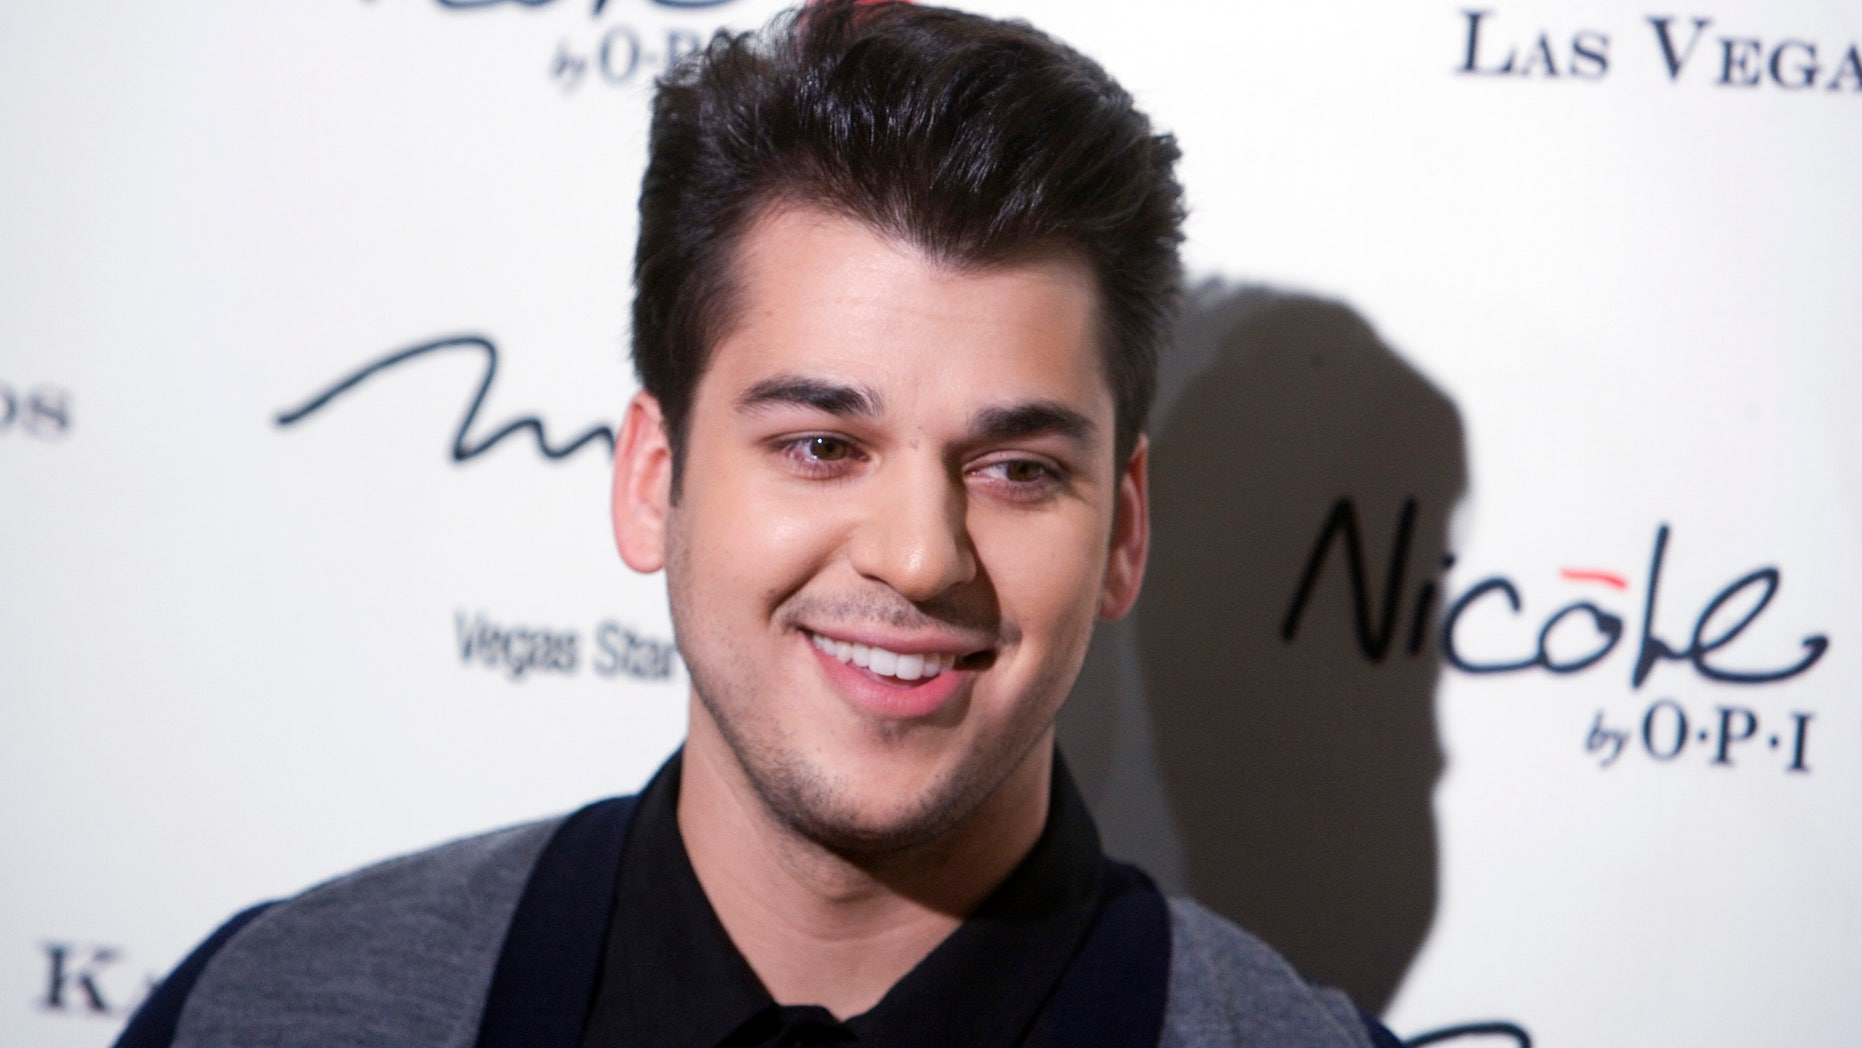 December 15, 2011. Television personality Rob Kardashian arrives at the opening of the Kardashian Khaos store at the Mirage Hotel and Casino in Las Vegas, Nevada.